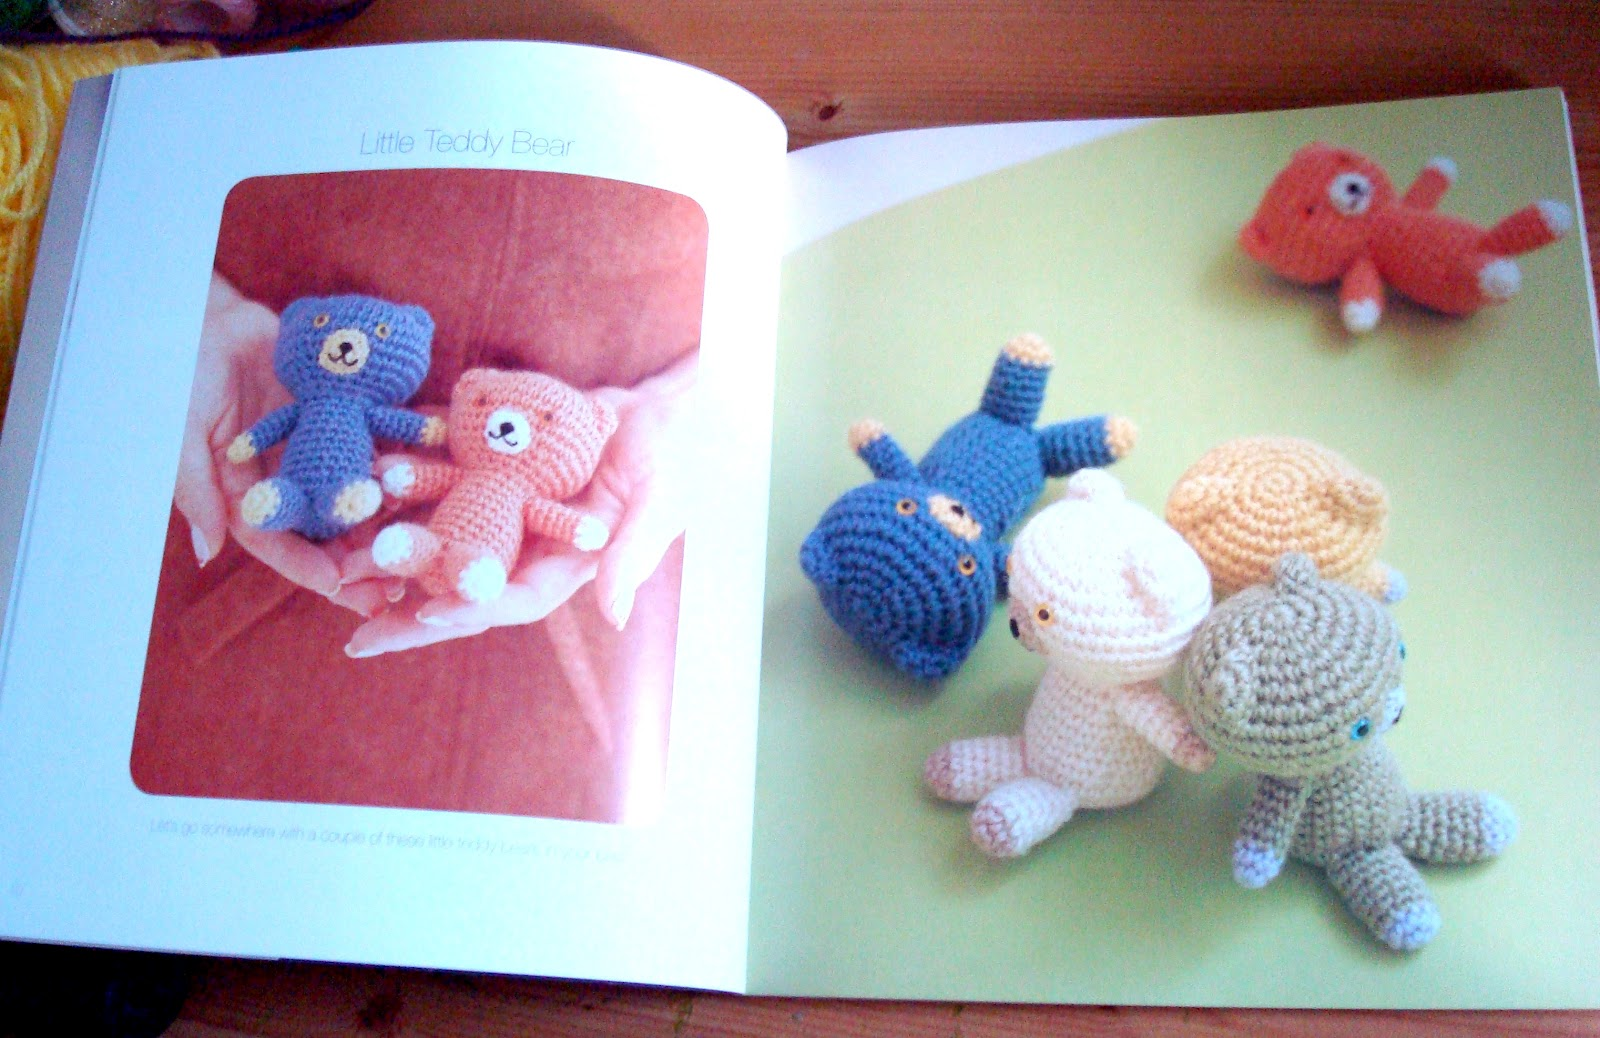 The pattern was really easy to use. The author provides a page describing  the symbols and stitches used in the book which was great.